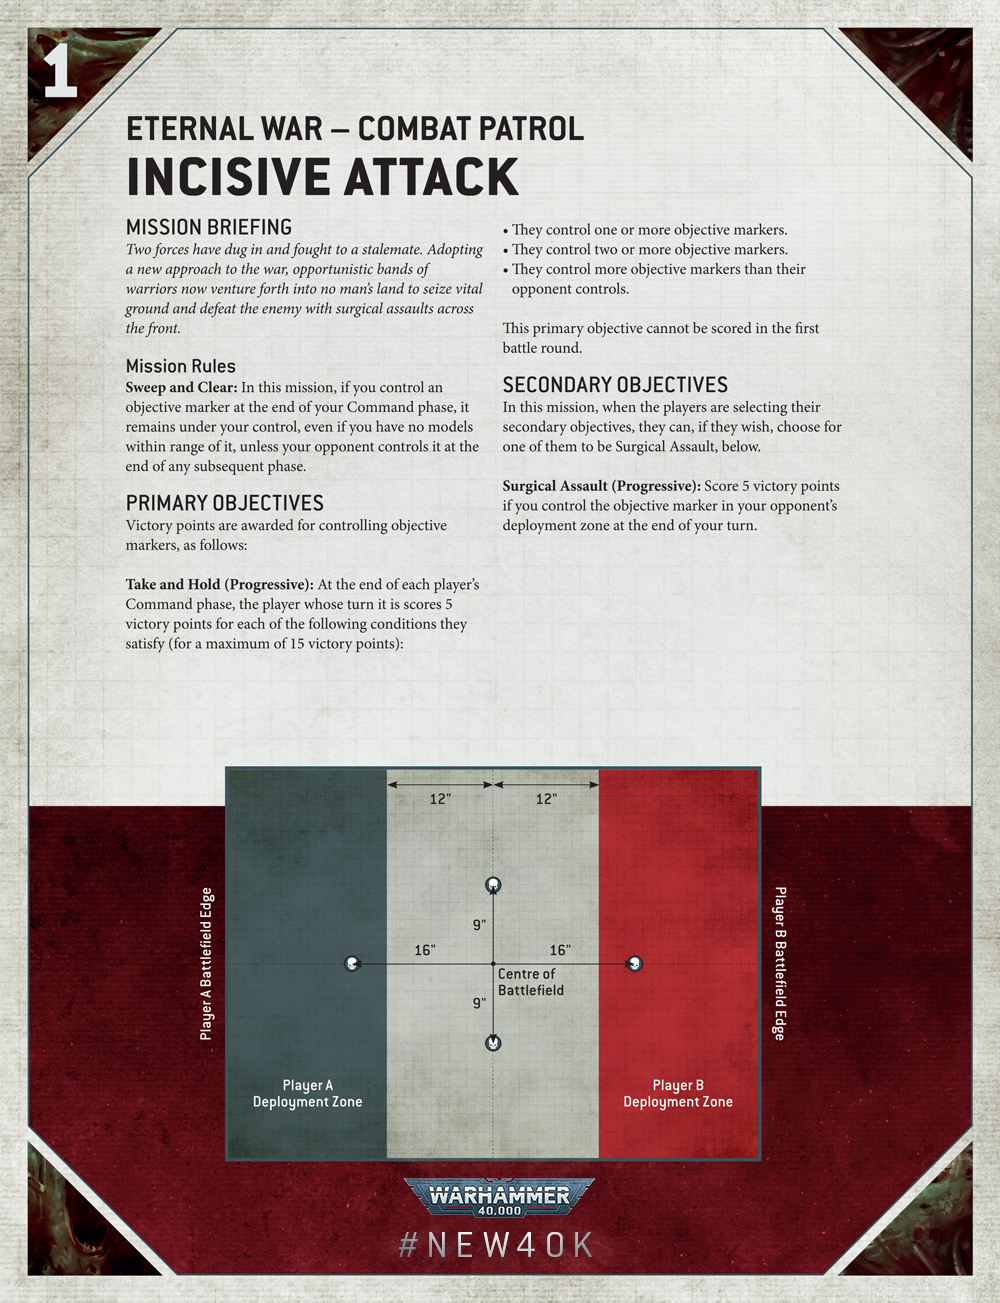 9th rules reveal Warhammer 40000